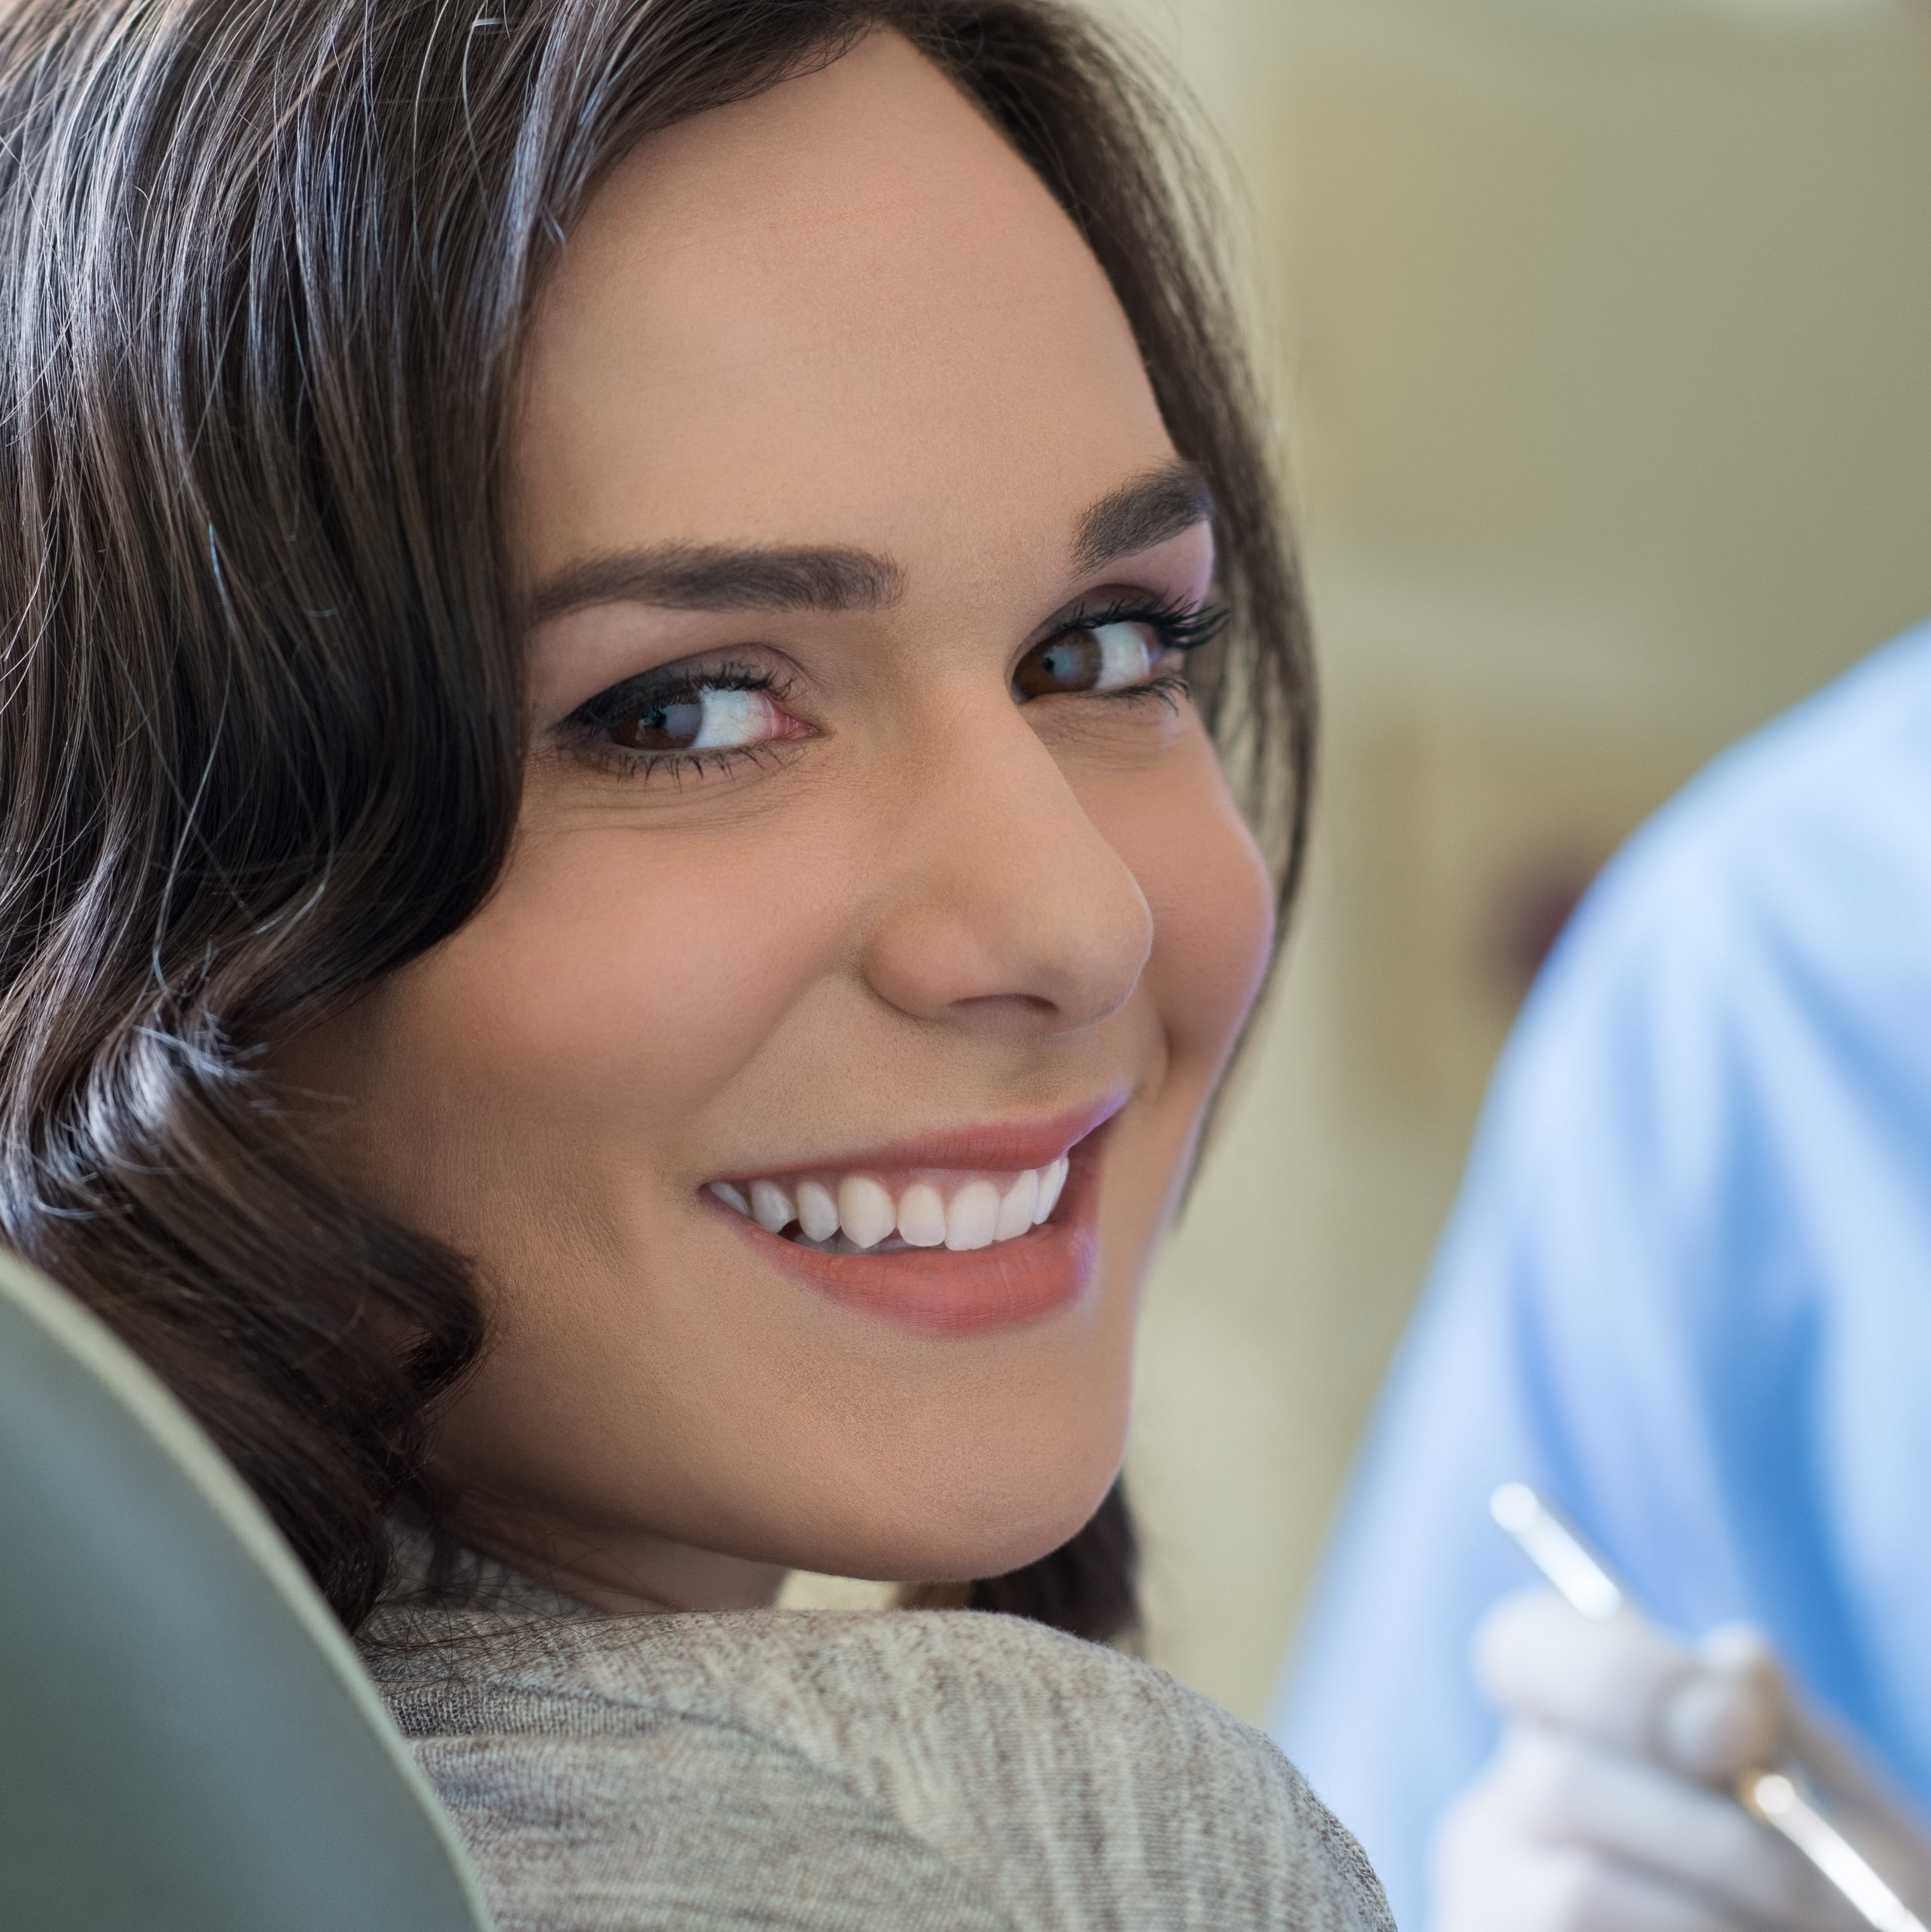 Smiling woman in dental chair looking back over her shoulder.